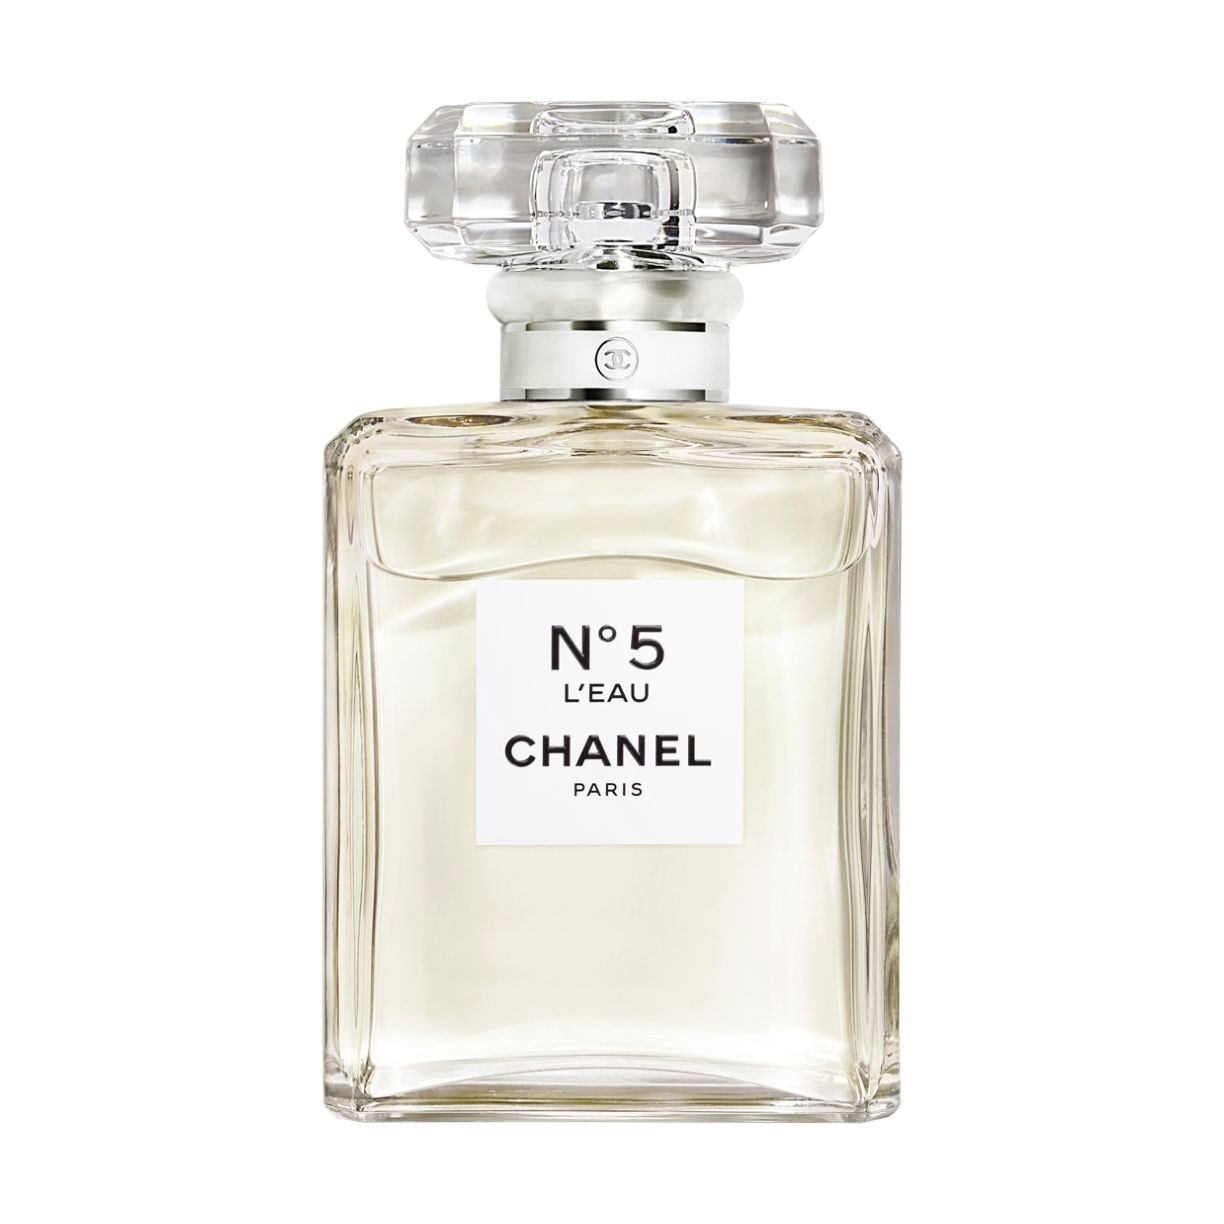 N°5 L'EAU EAU DE TOILETTE SPRAY 35ml